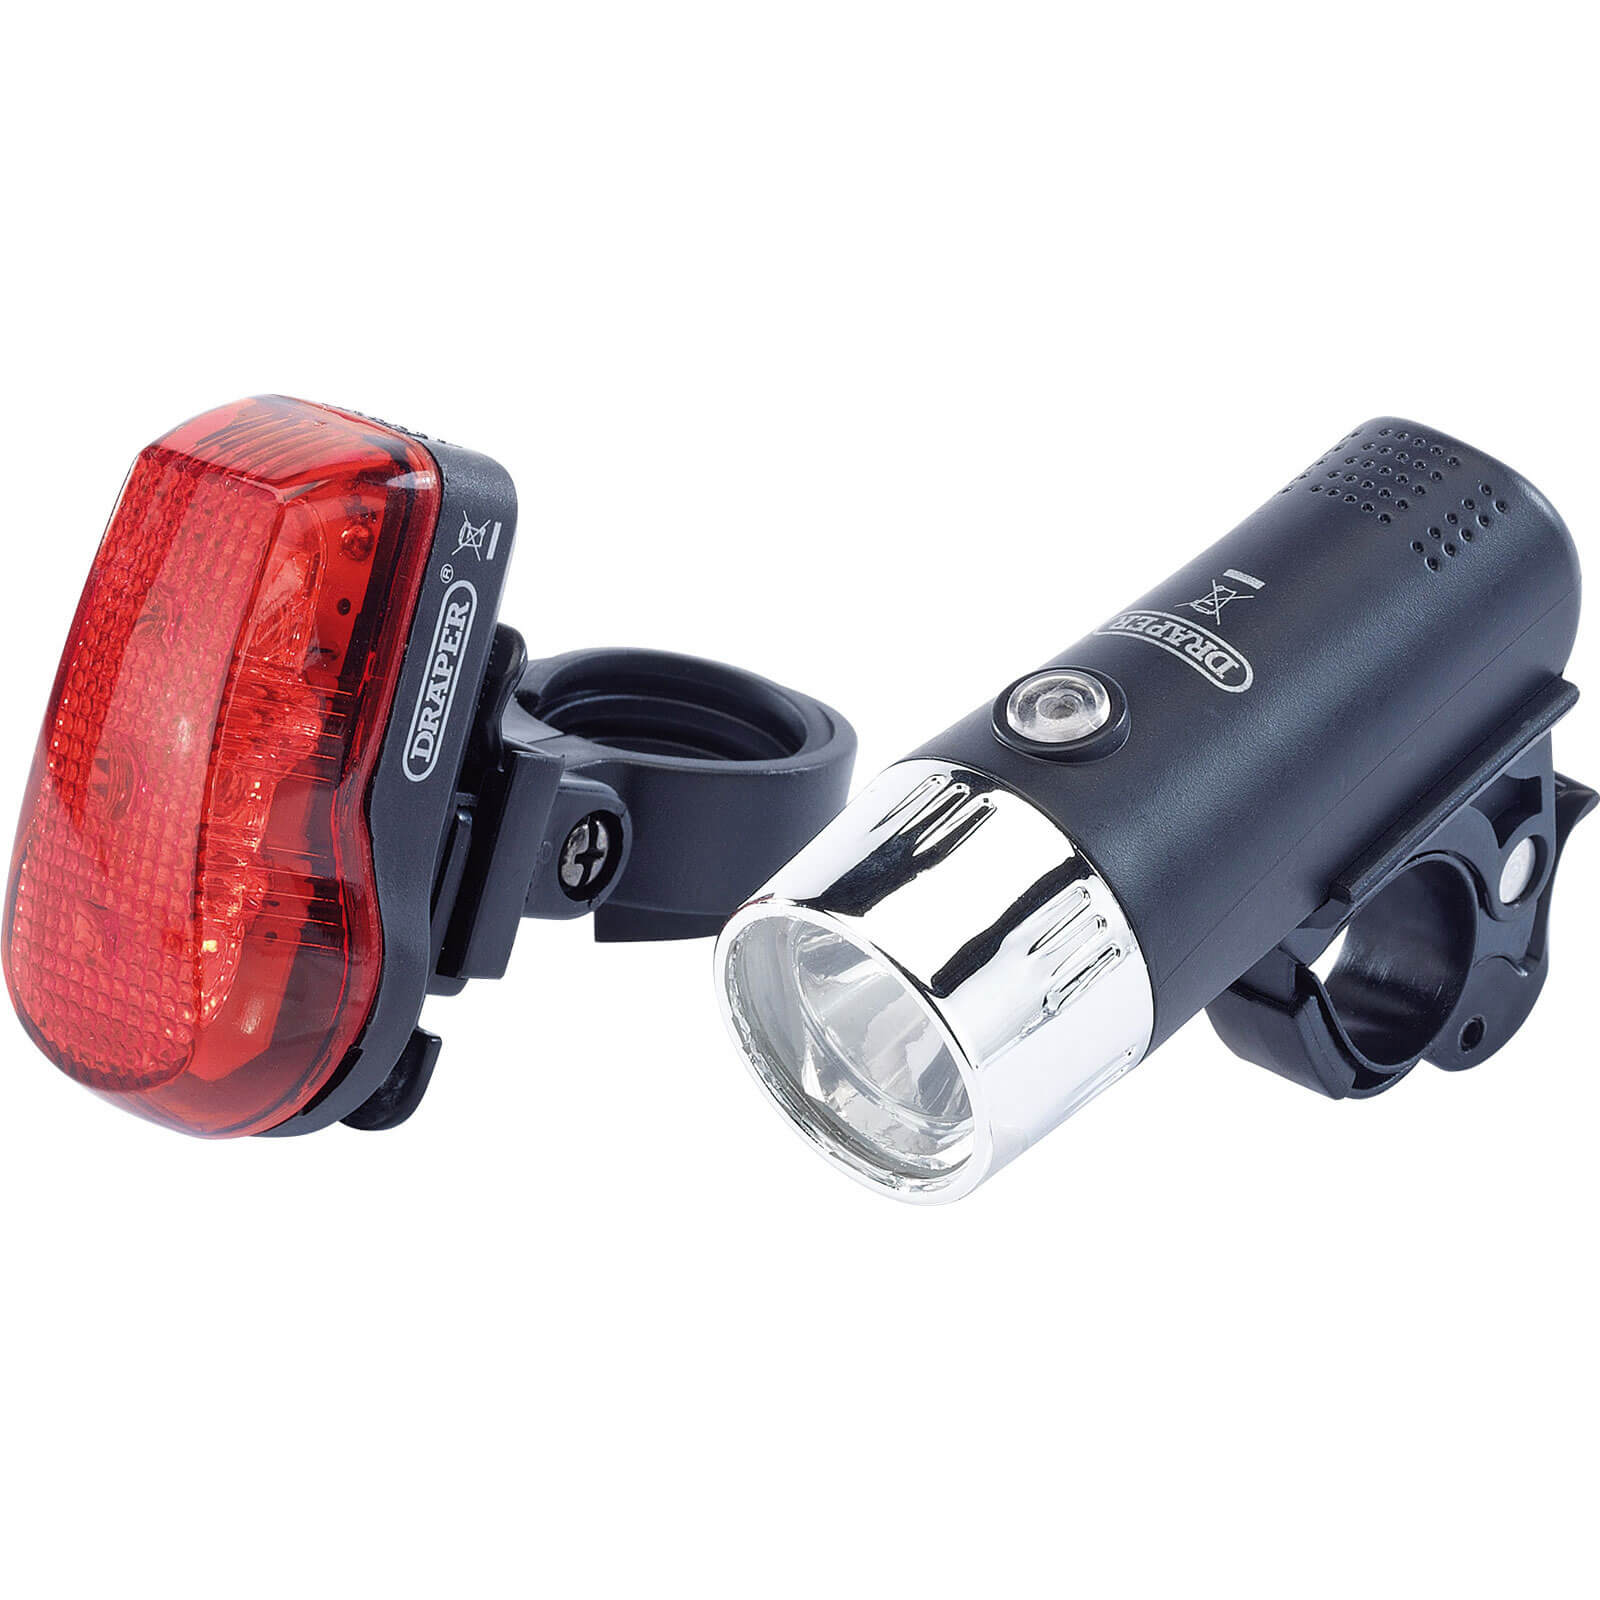 Image of Draper Front and Rear LED Bicycle Light Set 75 Lumens